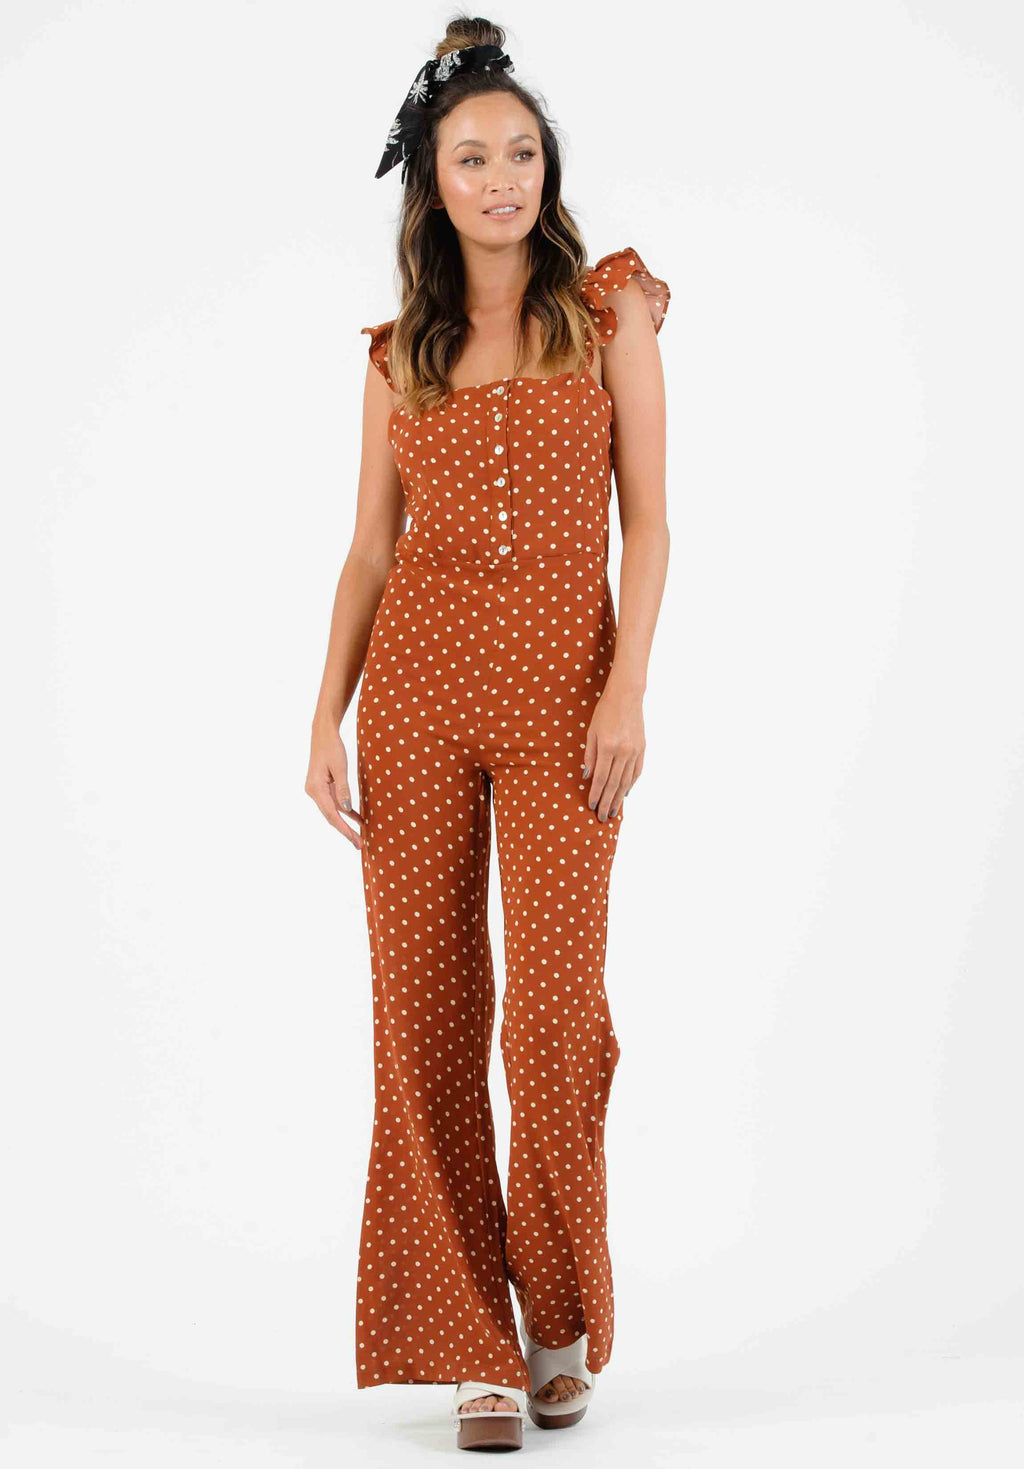 MADELYNN RUFFLE STRAP JUMPSUIT | RUSSET POLKA DOT